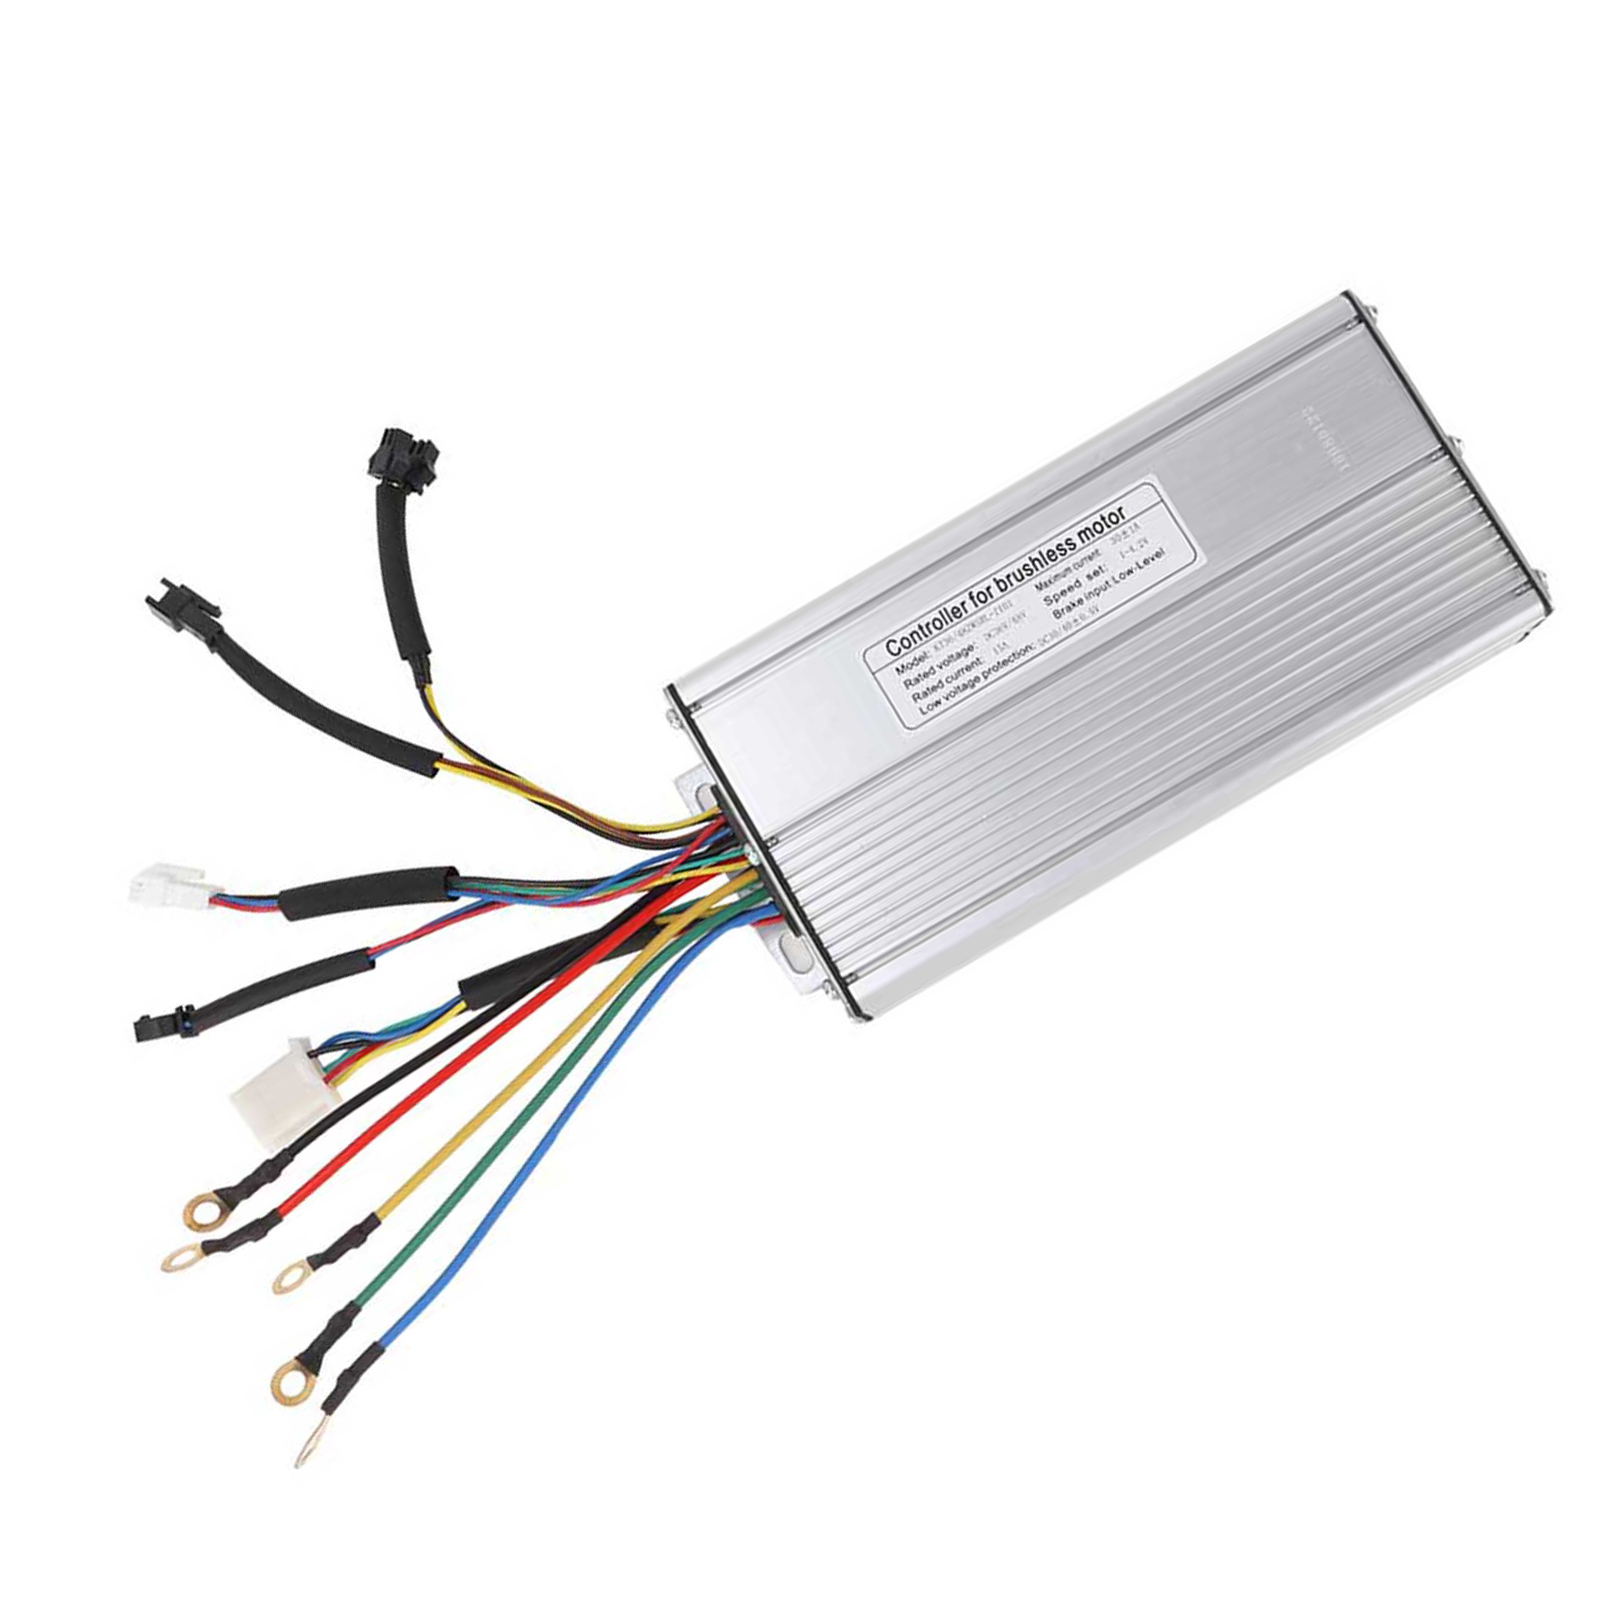 24V-36V-48V-Electric-Bicycle-Bike-Scooter-Brushless-Motor-Speed-Controller-Kit thumbnail 26